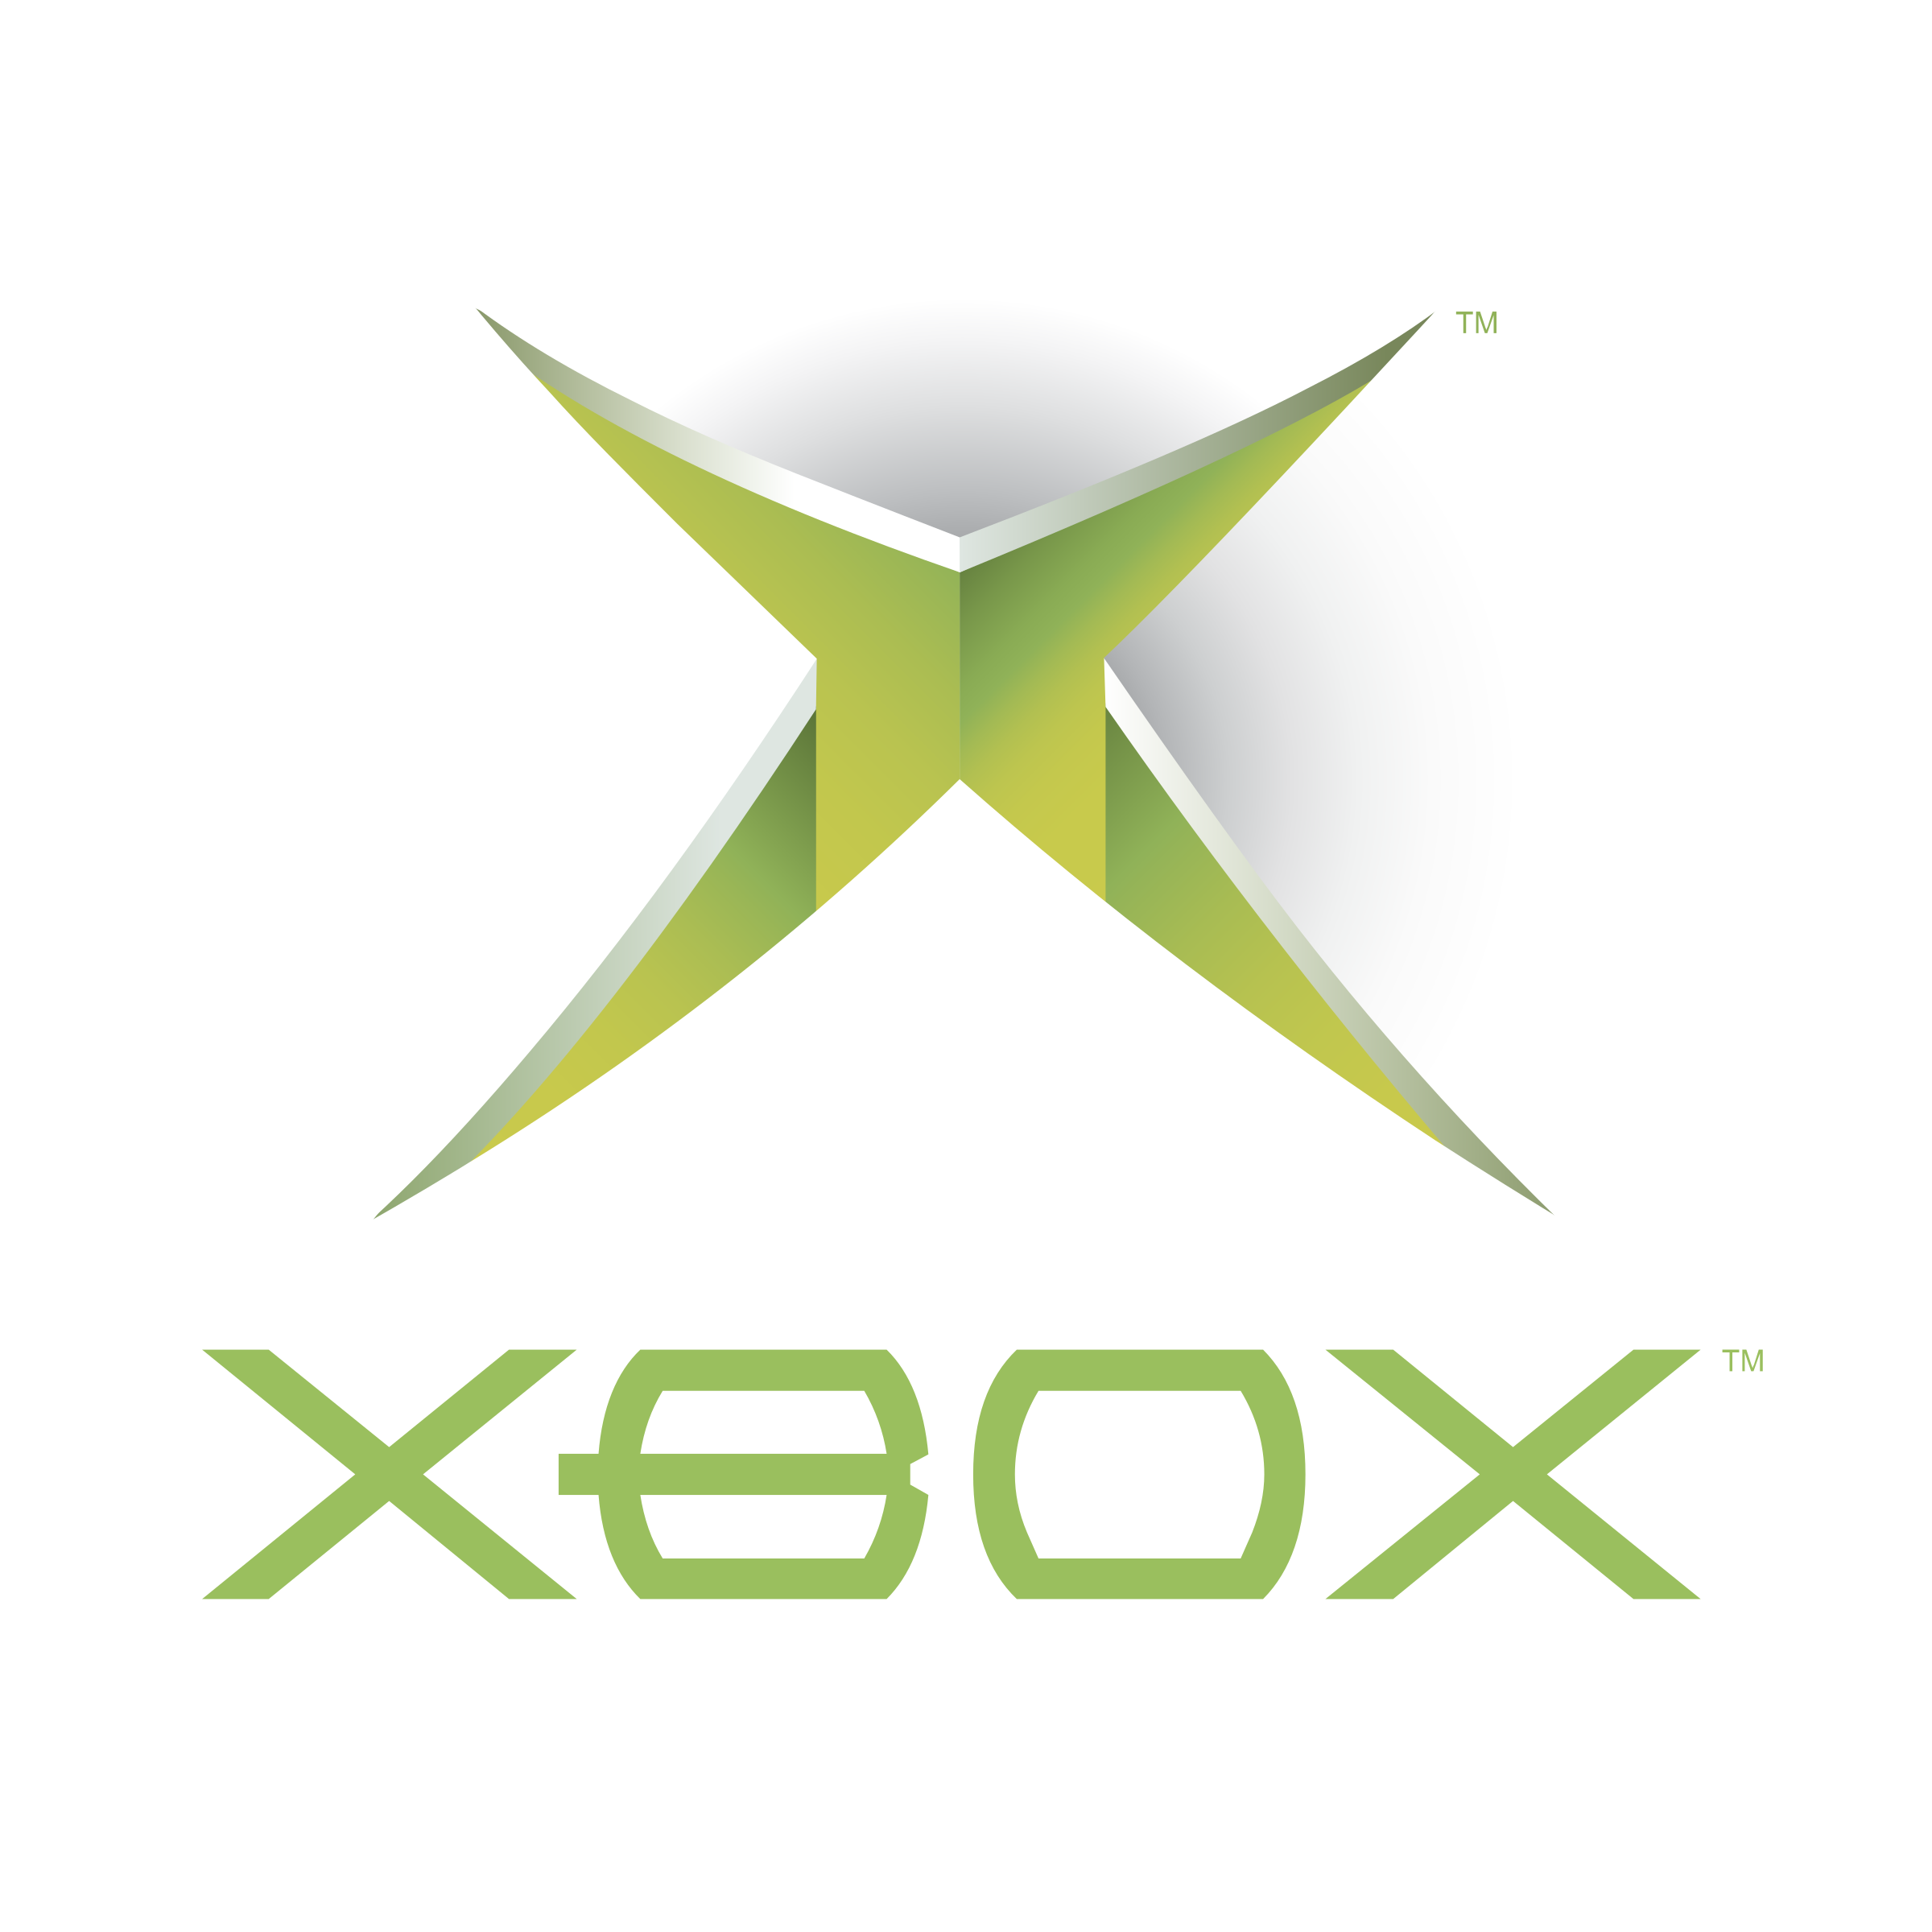 2400x2400 Microsoft Xbox Logo Png Transparent Amp Svg Vector